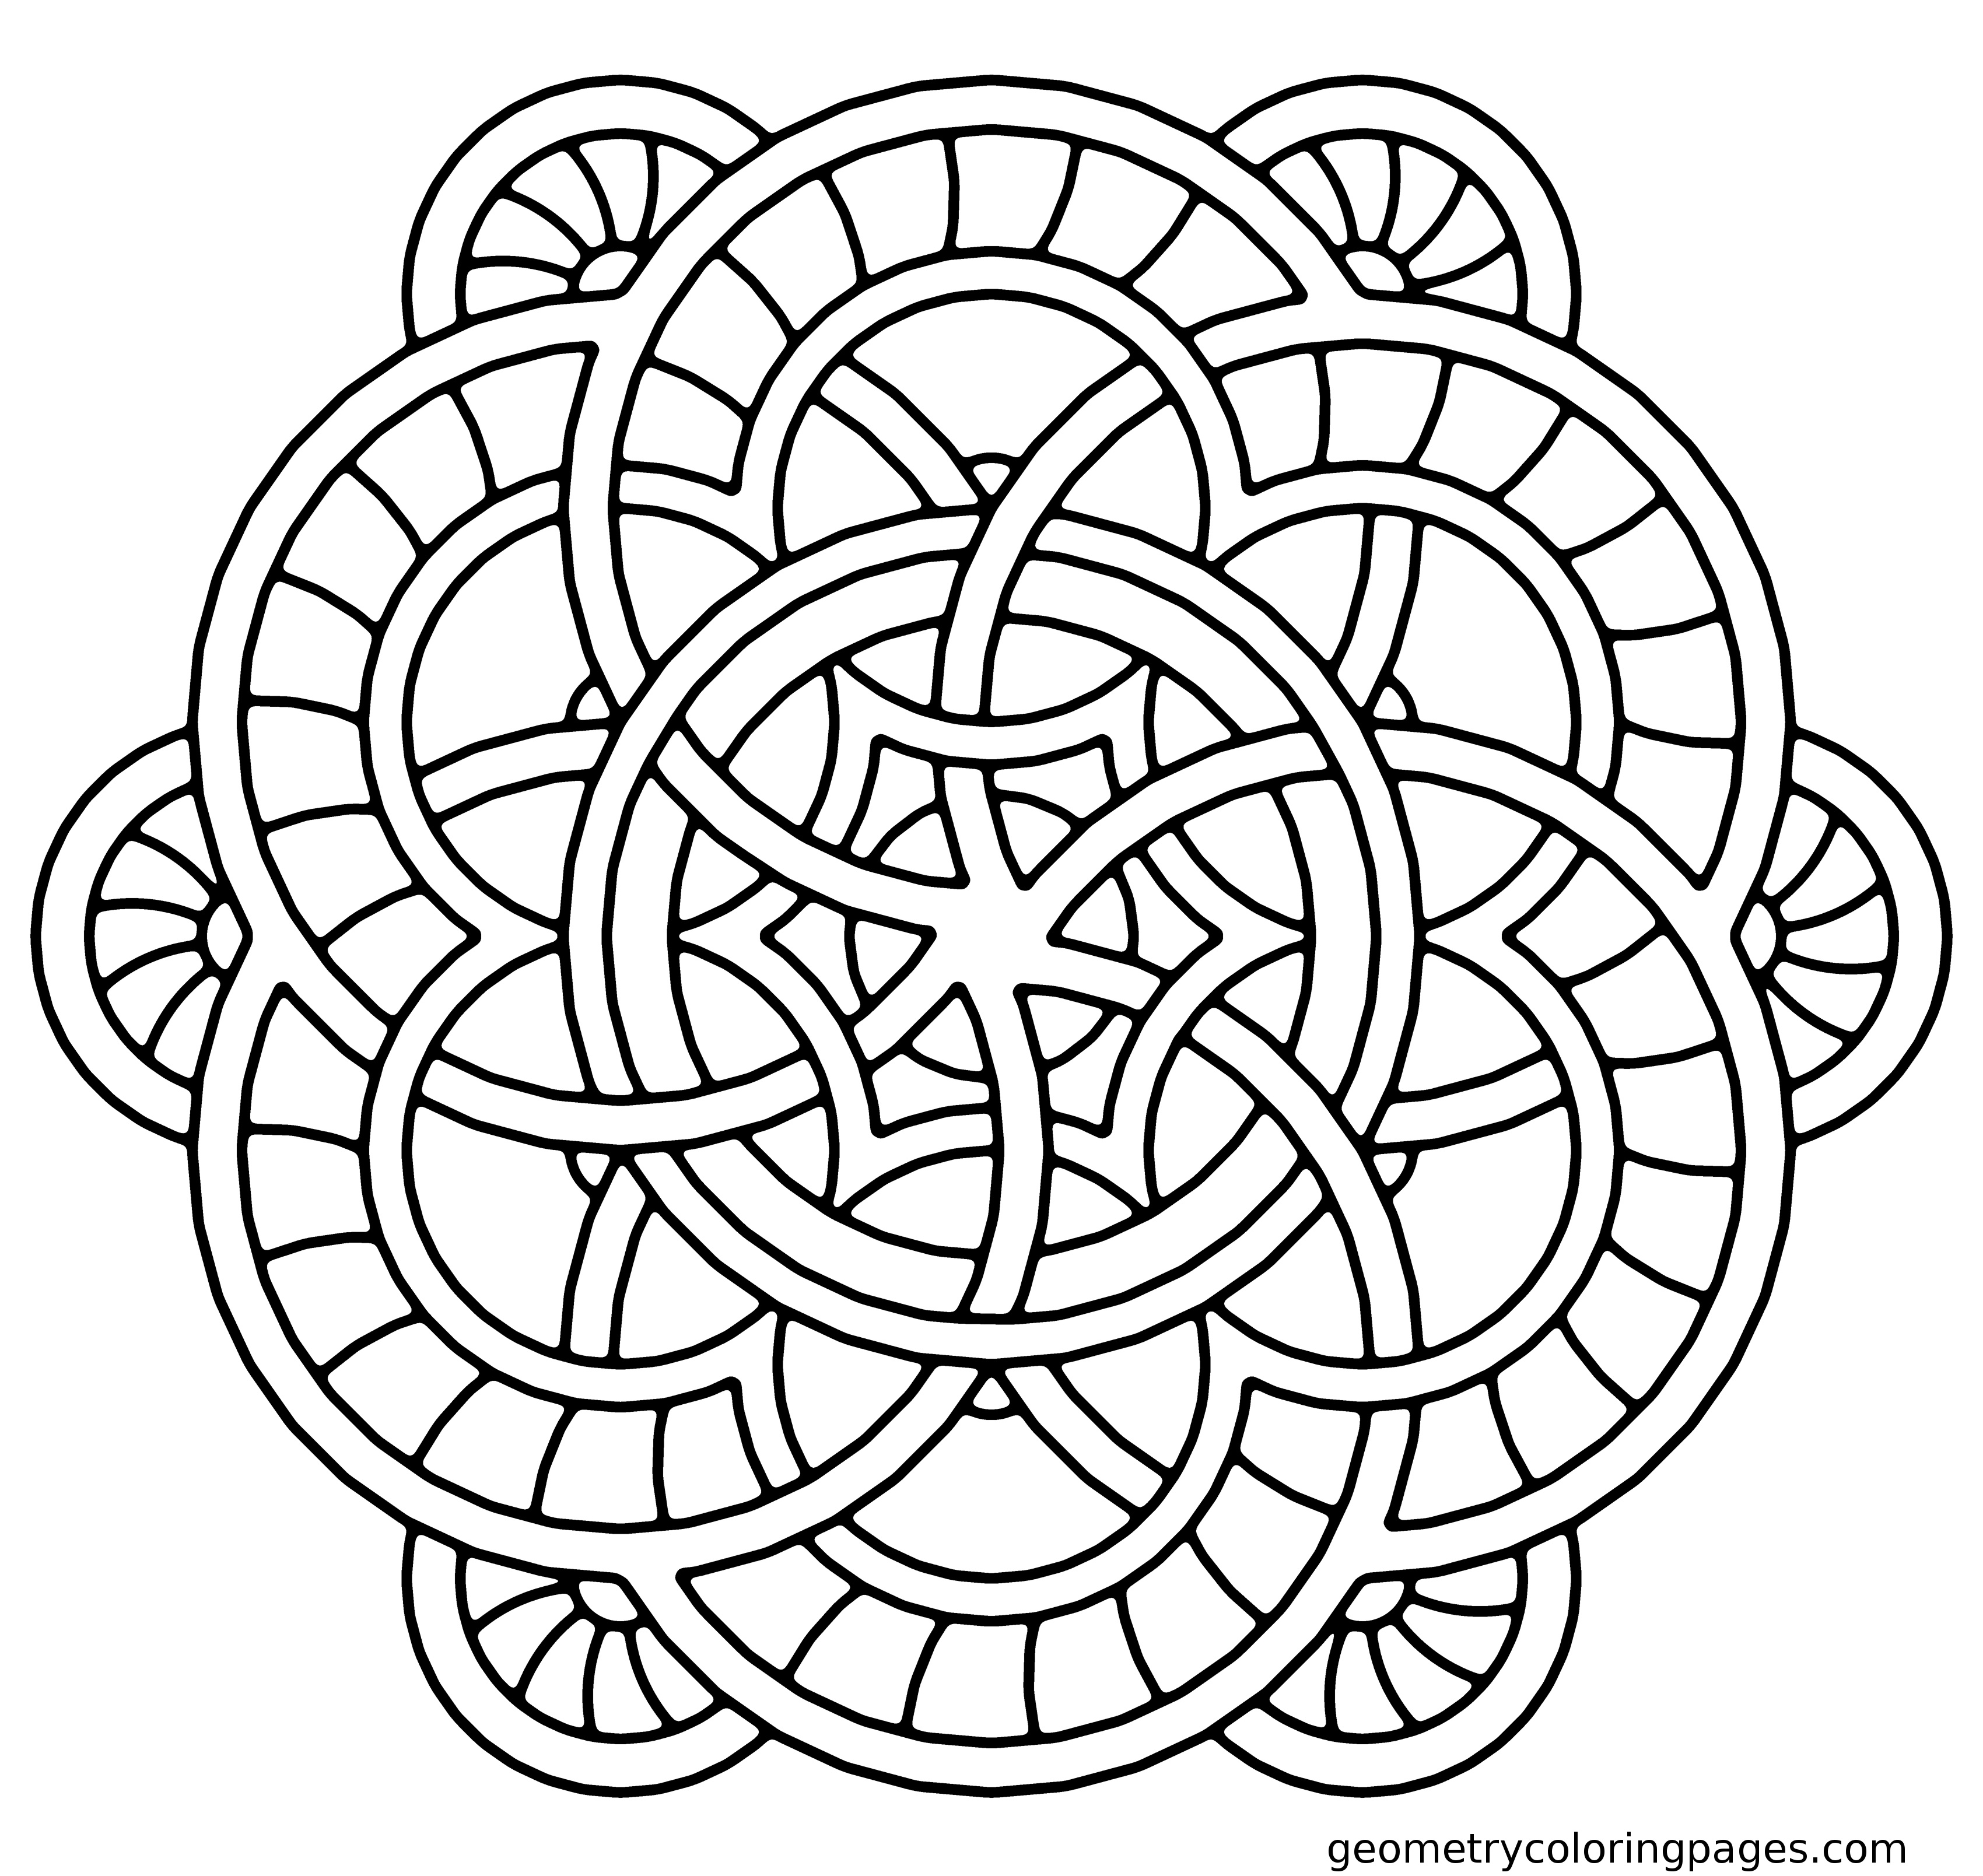 3400x3217 Adult Coloring Pages Of Simple Mandalas Free To Print Printable